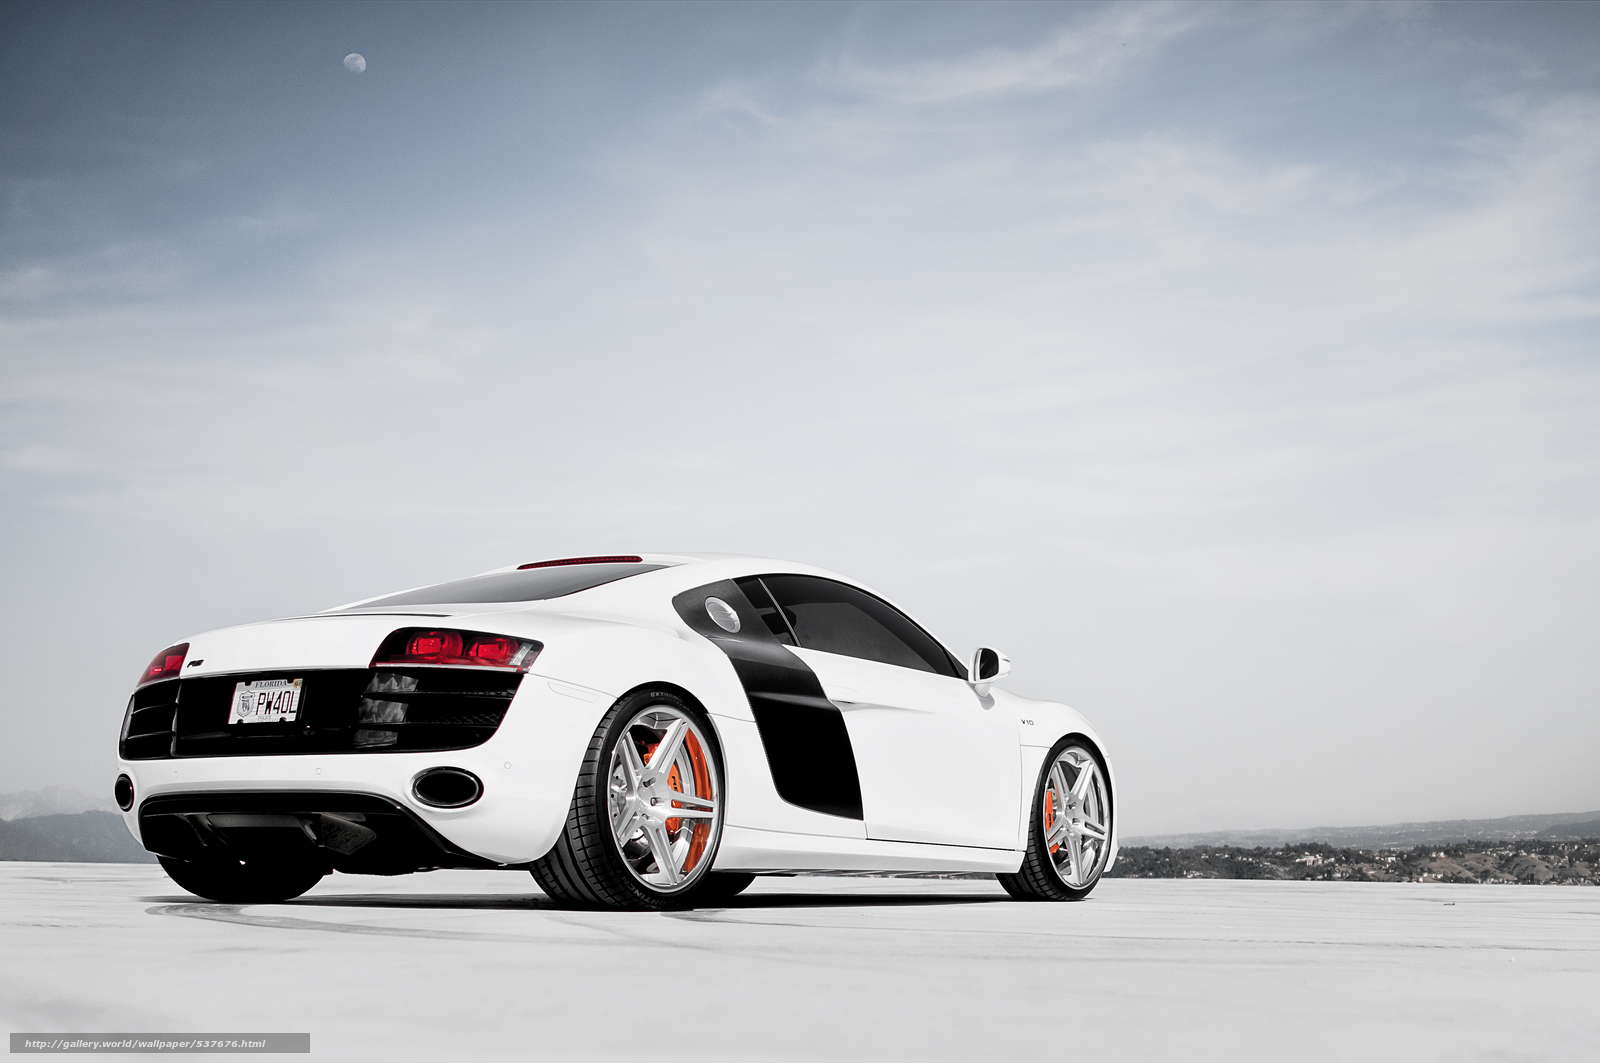 Download wallpaper audi R8 white Audi desktop wallpaper in the 1600x1063